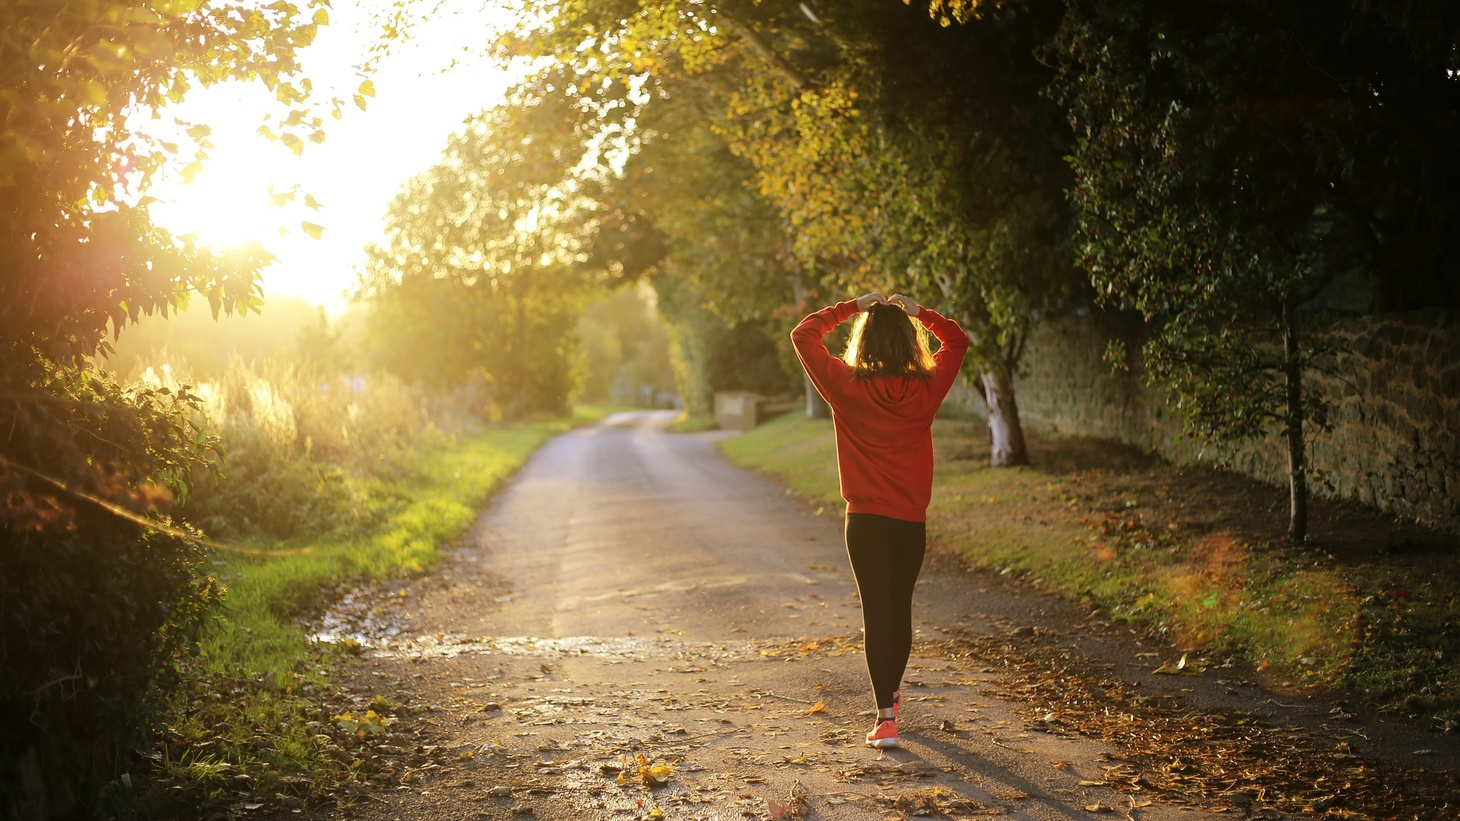 Simple exercise such as going outside for a walk contributes to people's overall health, says Arthur Evans, Jr.